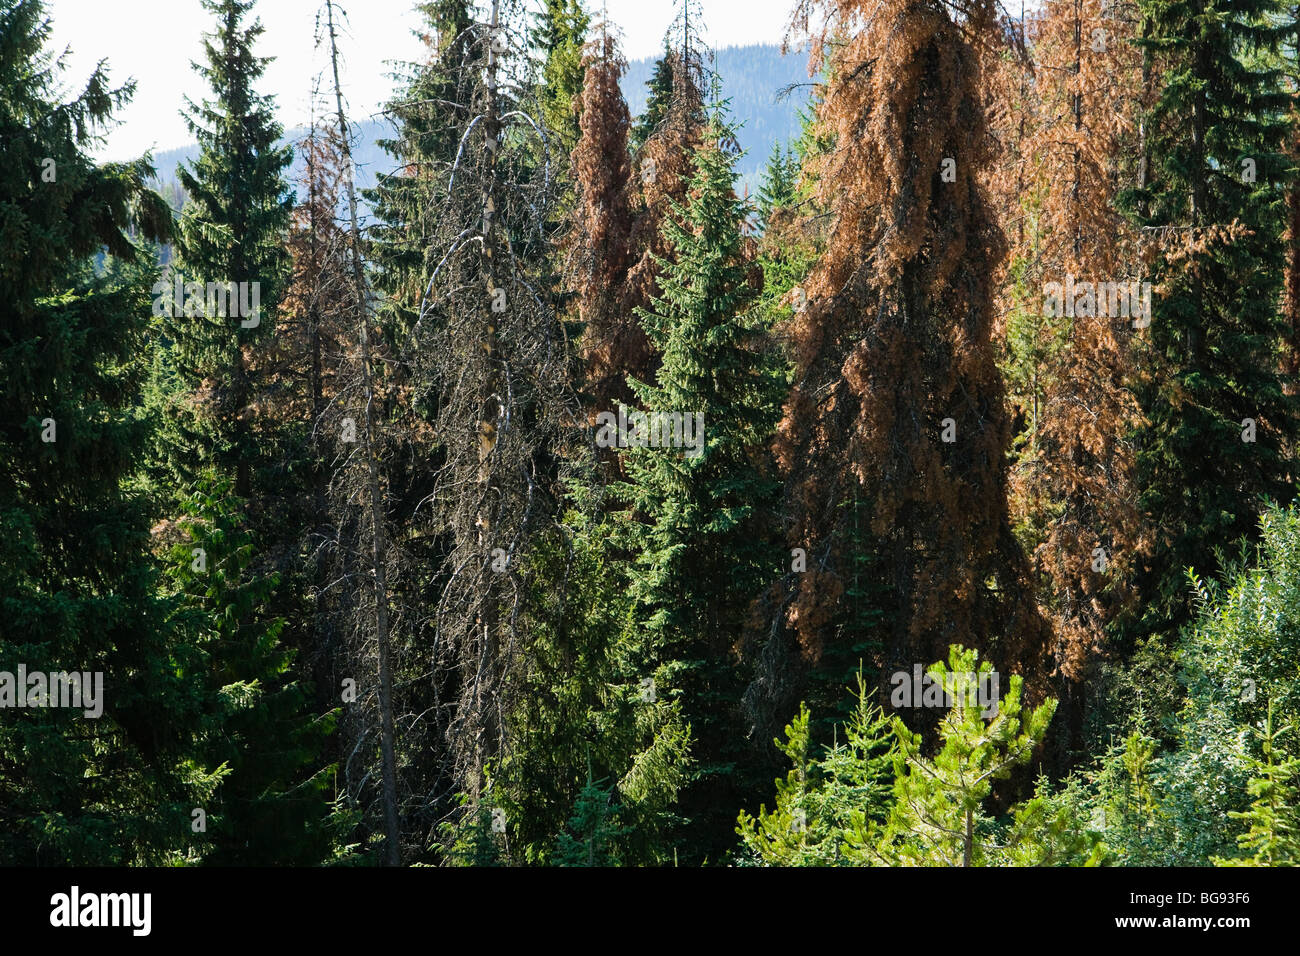 Conifer trees in Idaho infested by the Mountain Pine Beetle. - Stock Image